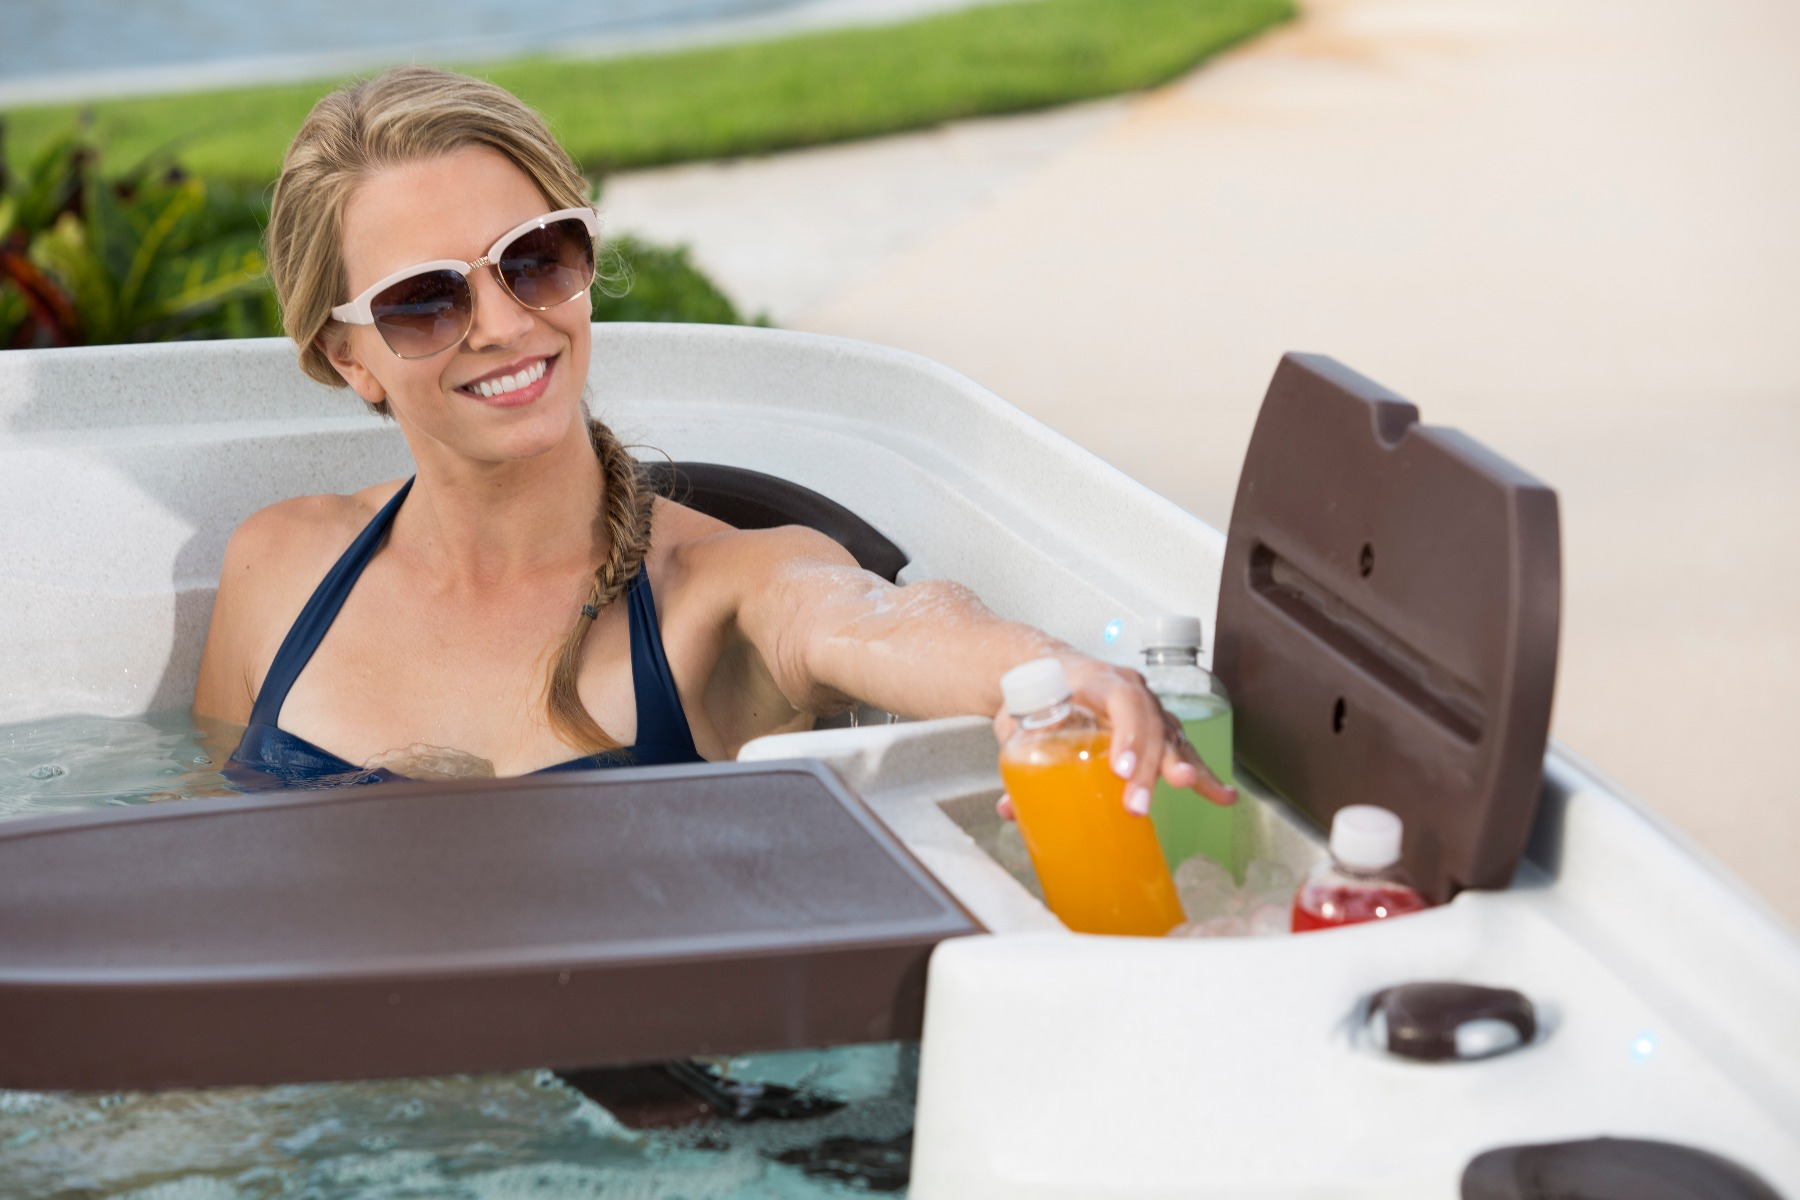 The Award Suite Spa has a handy drinks cooler and table built in.